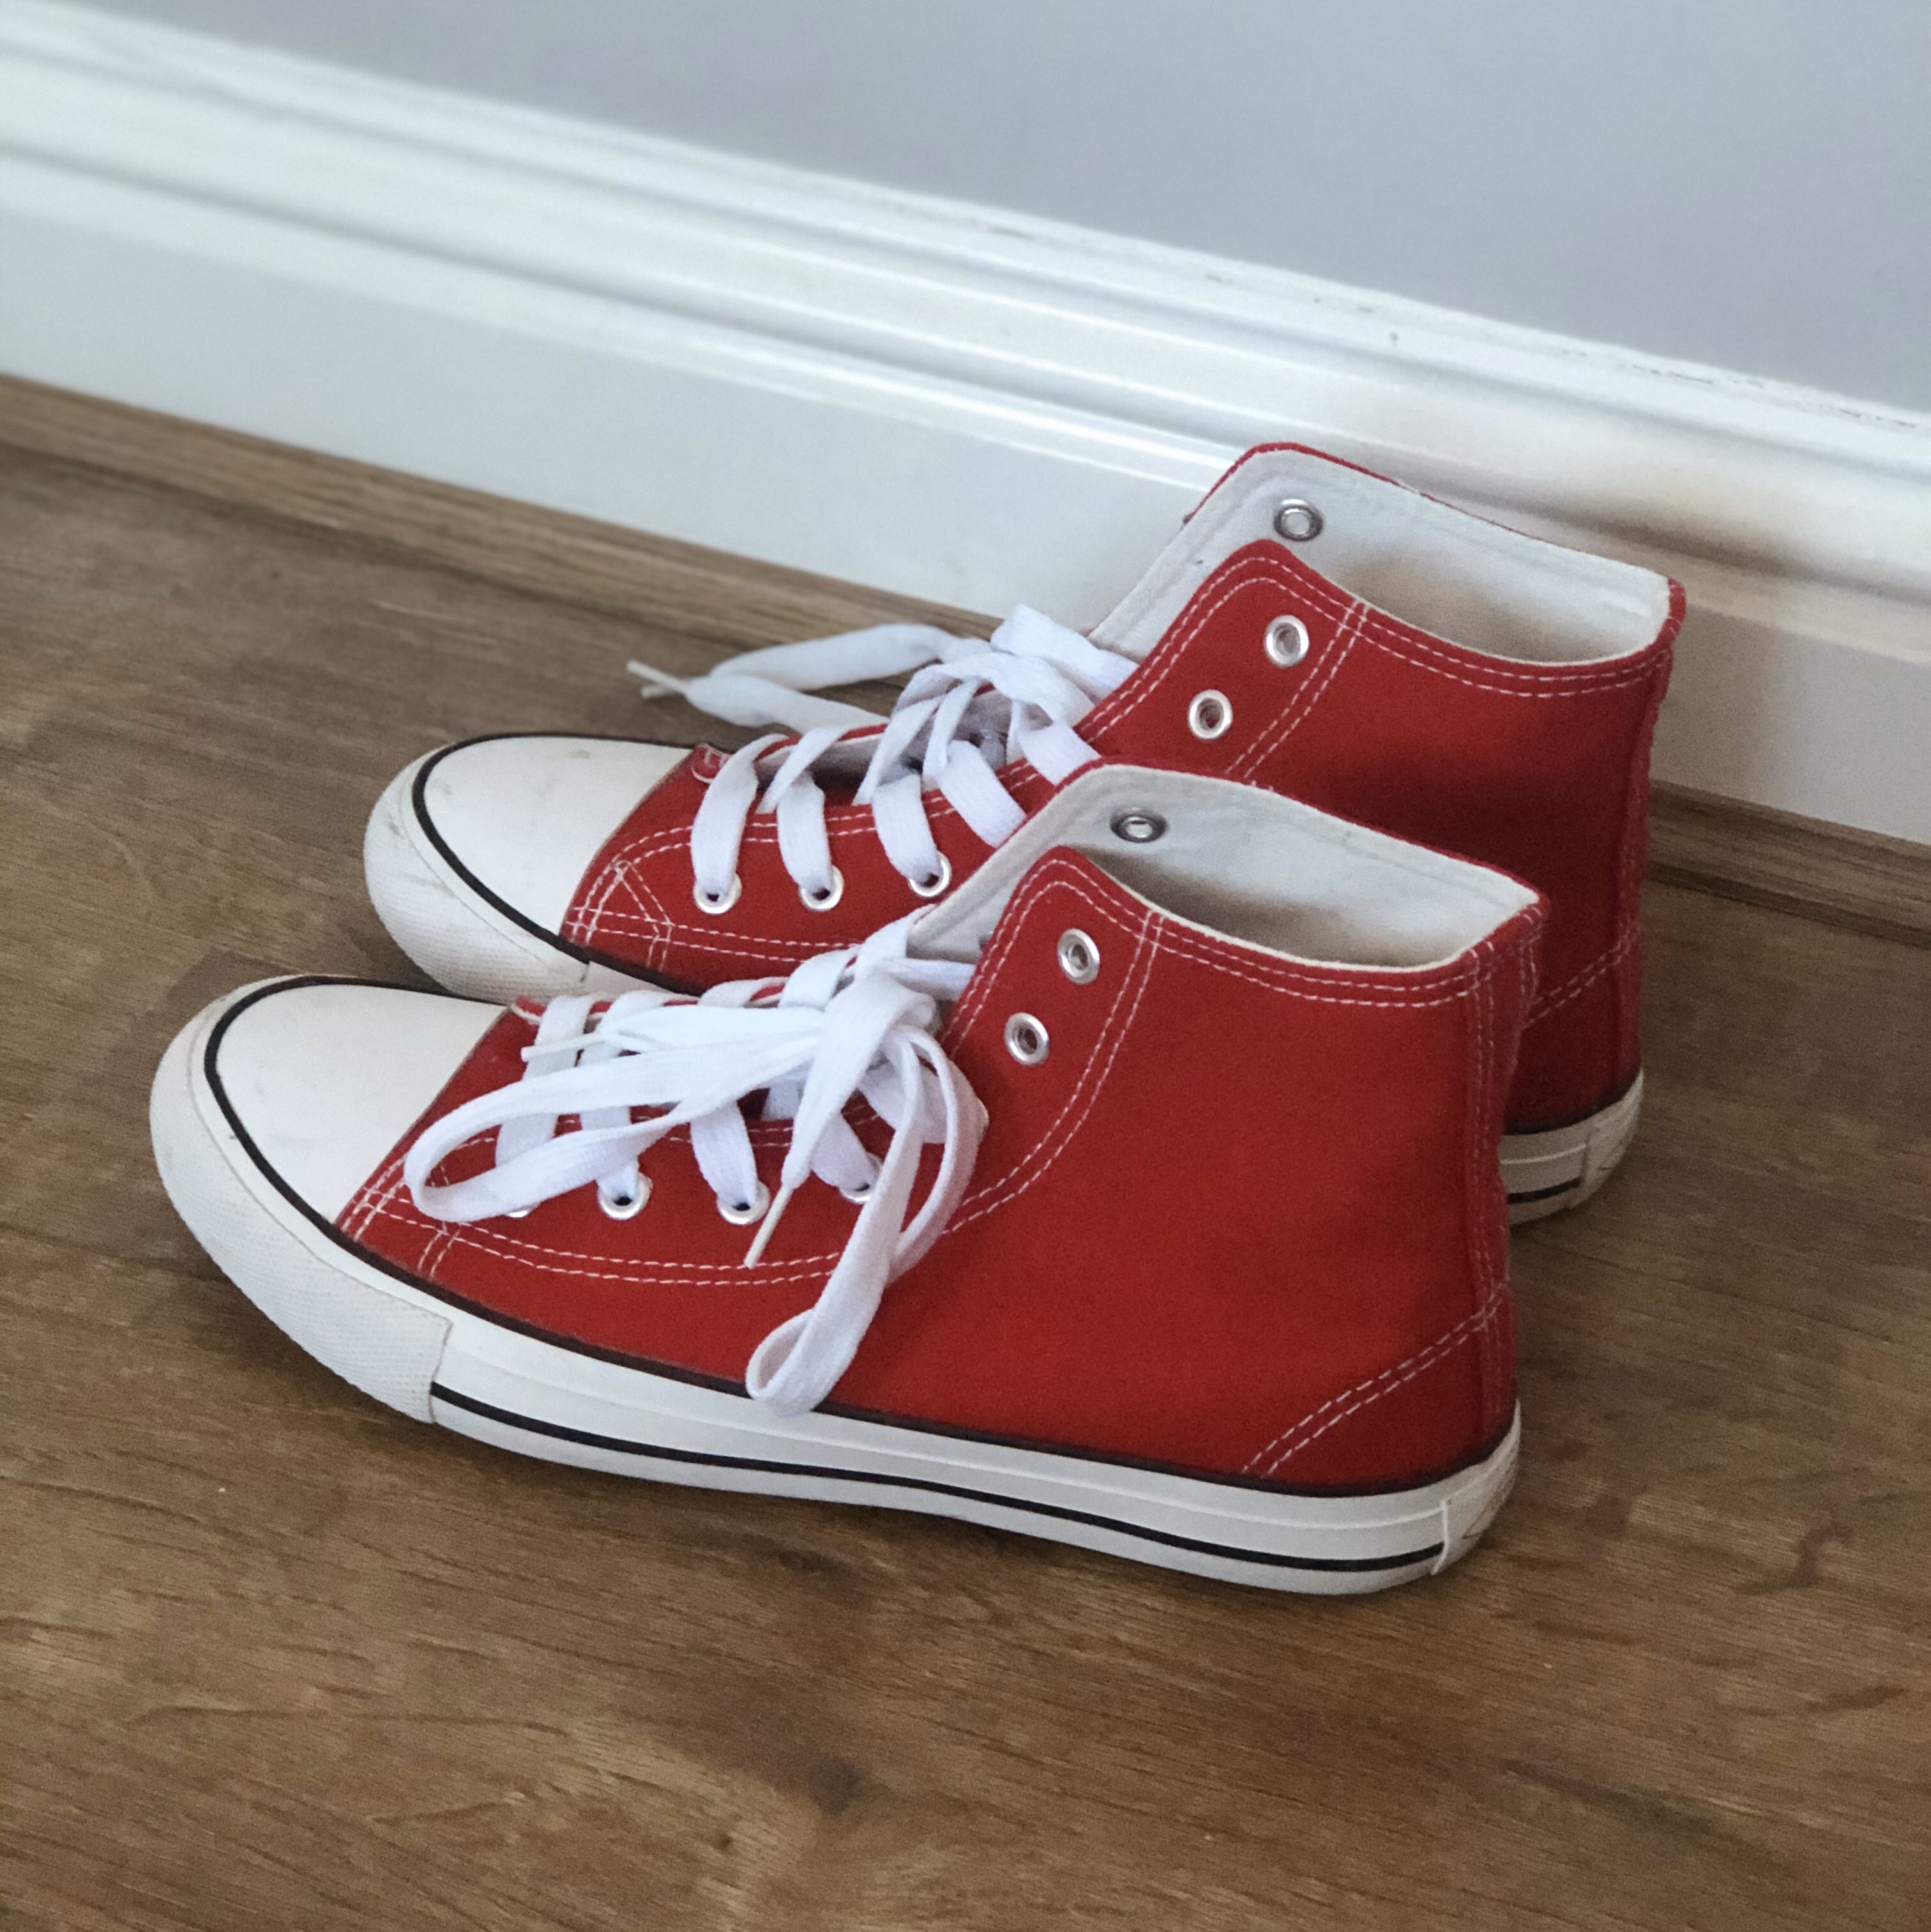 red converse style